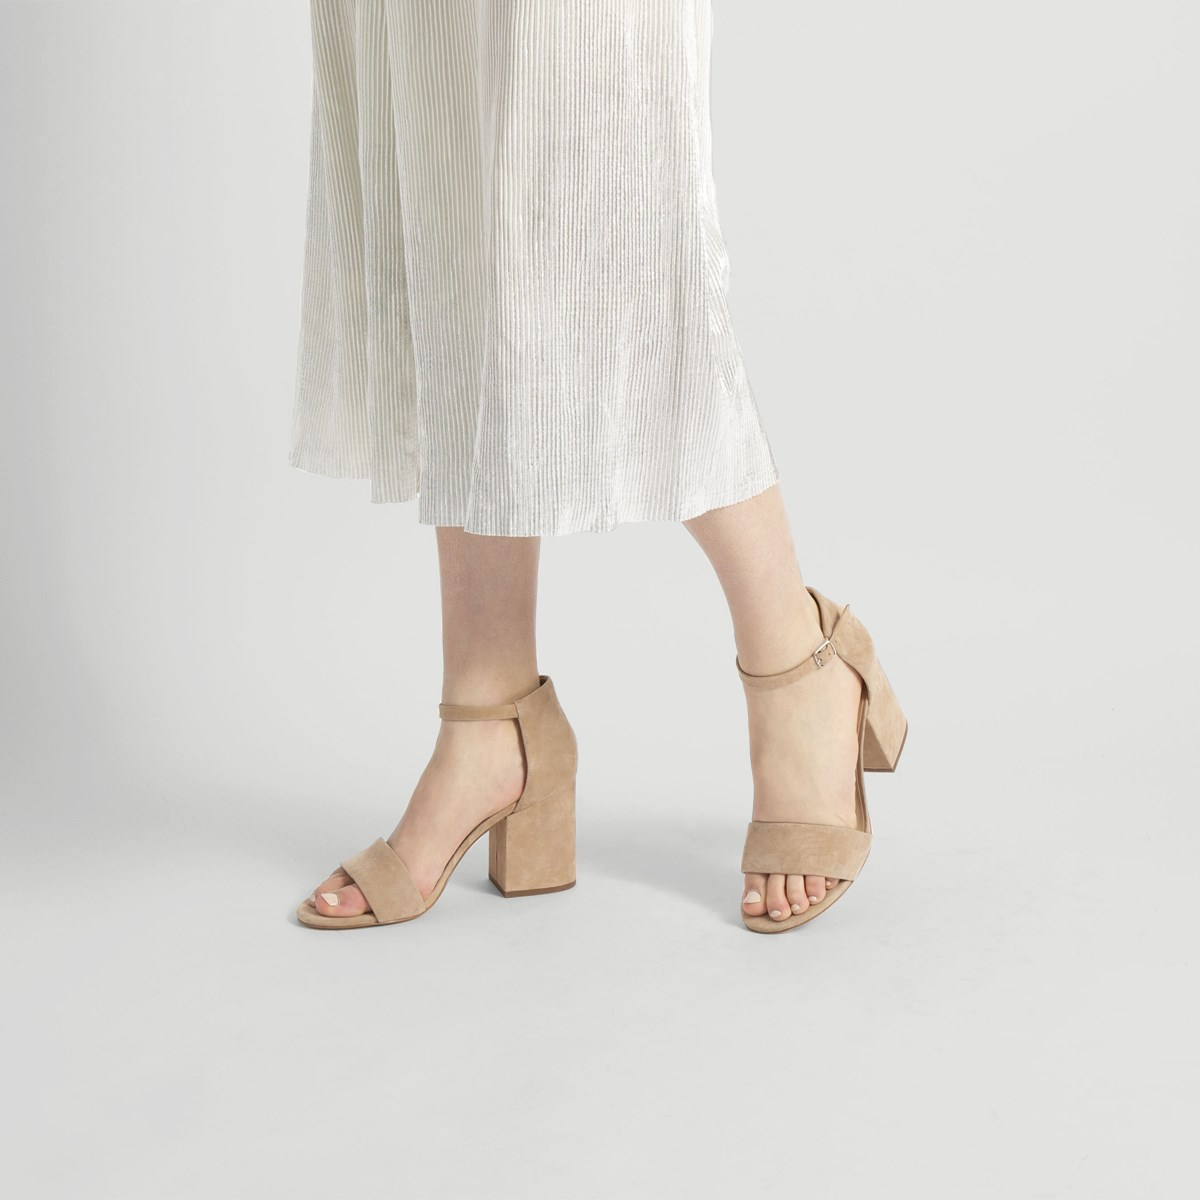 Women's Summer Strappy Nude Heel